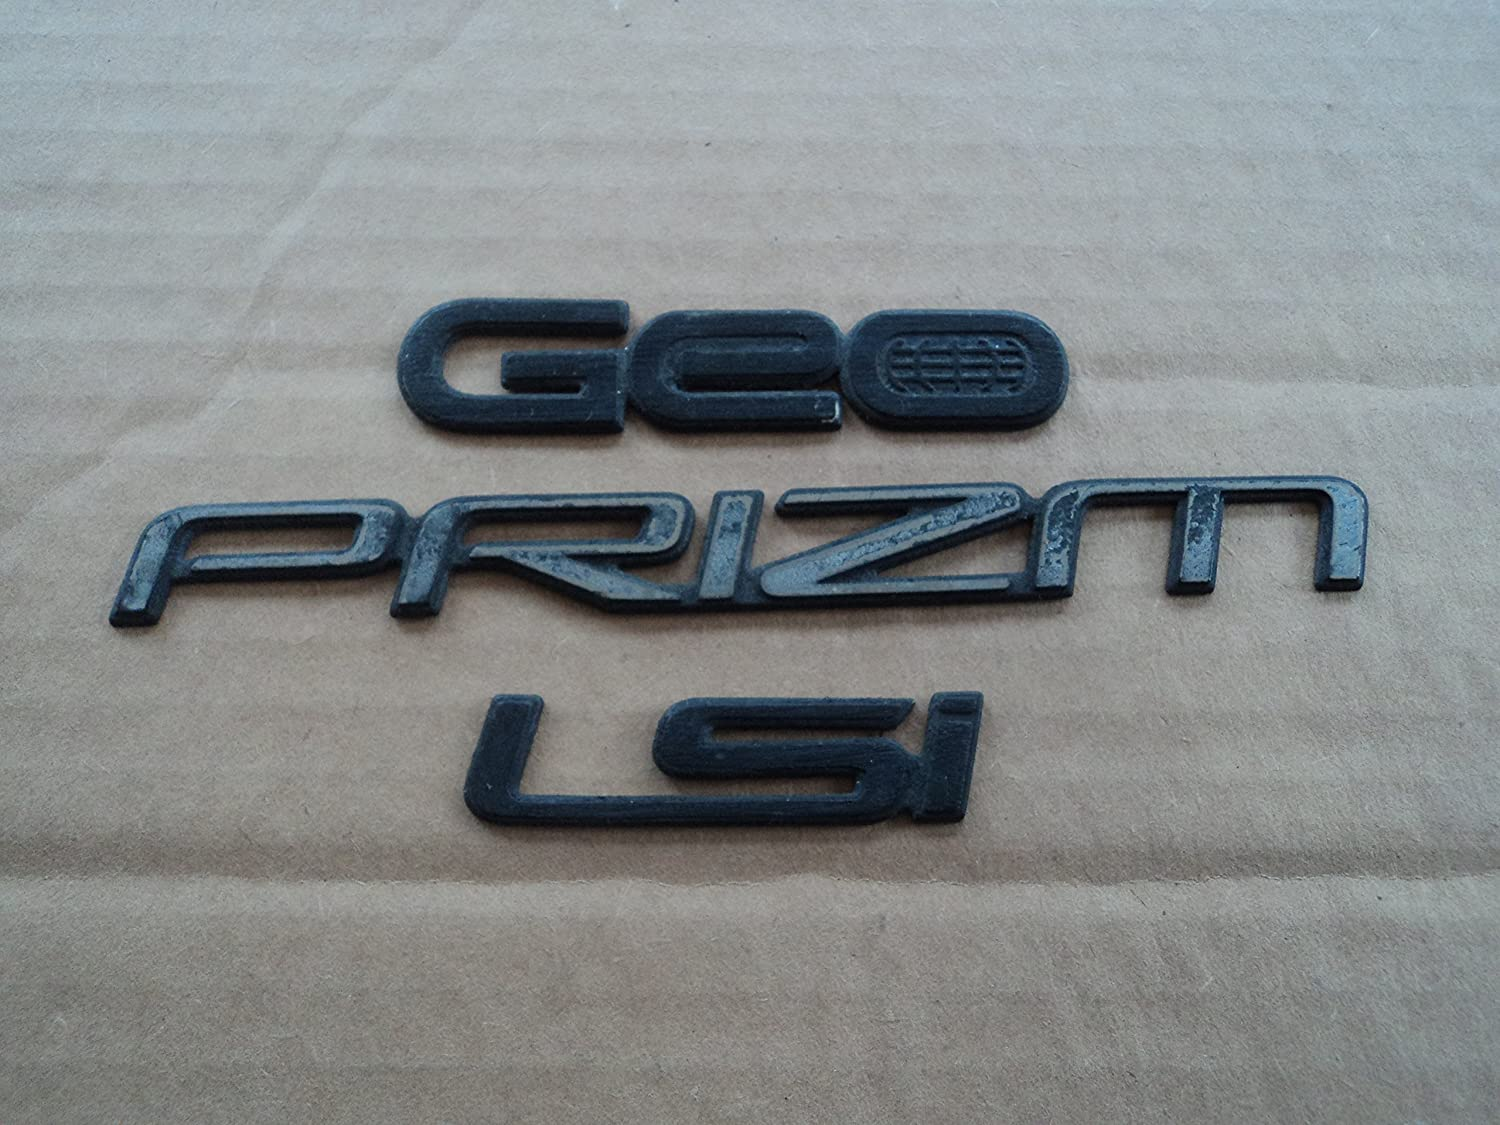 Amazon com: 93-97 Chevy Prizm LSI Trunk Used Emblem OEM Boot